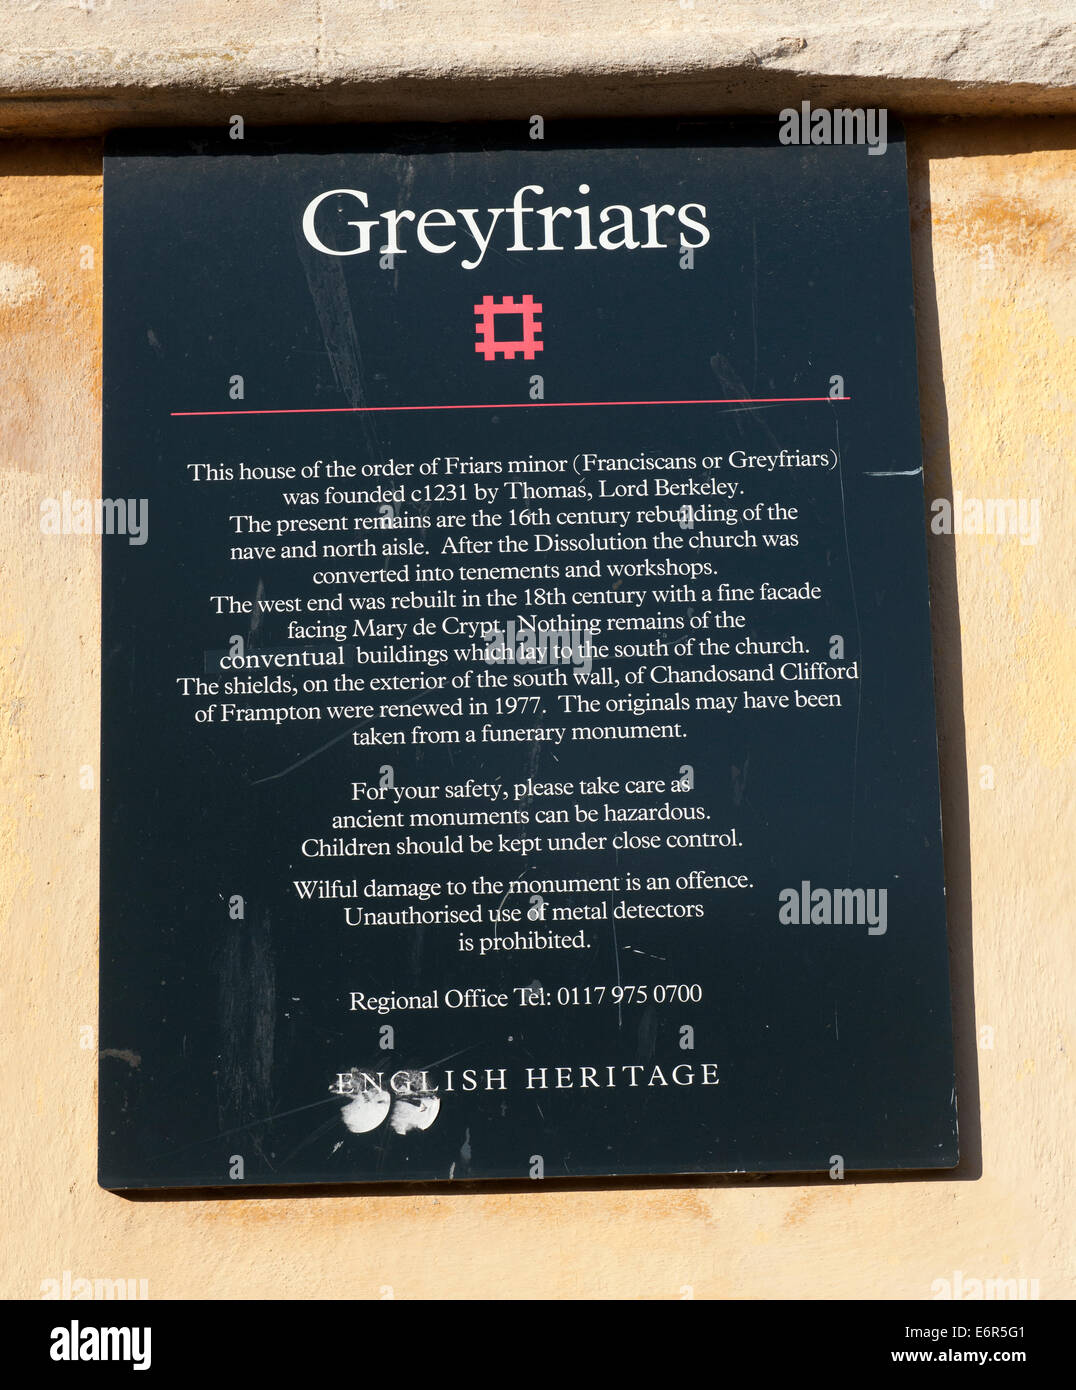 English Heritage plaque on the wall of Greyfriars an historic monastic house in the City Centre of Gloucester, Gloucestershire. - Stock Image